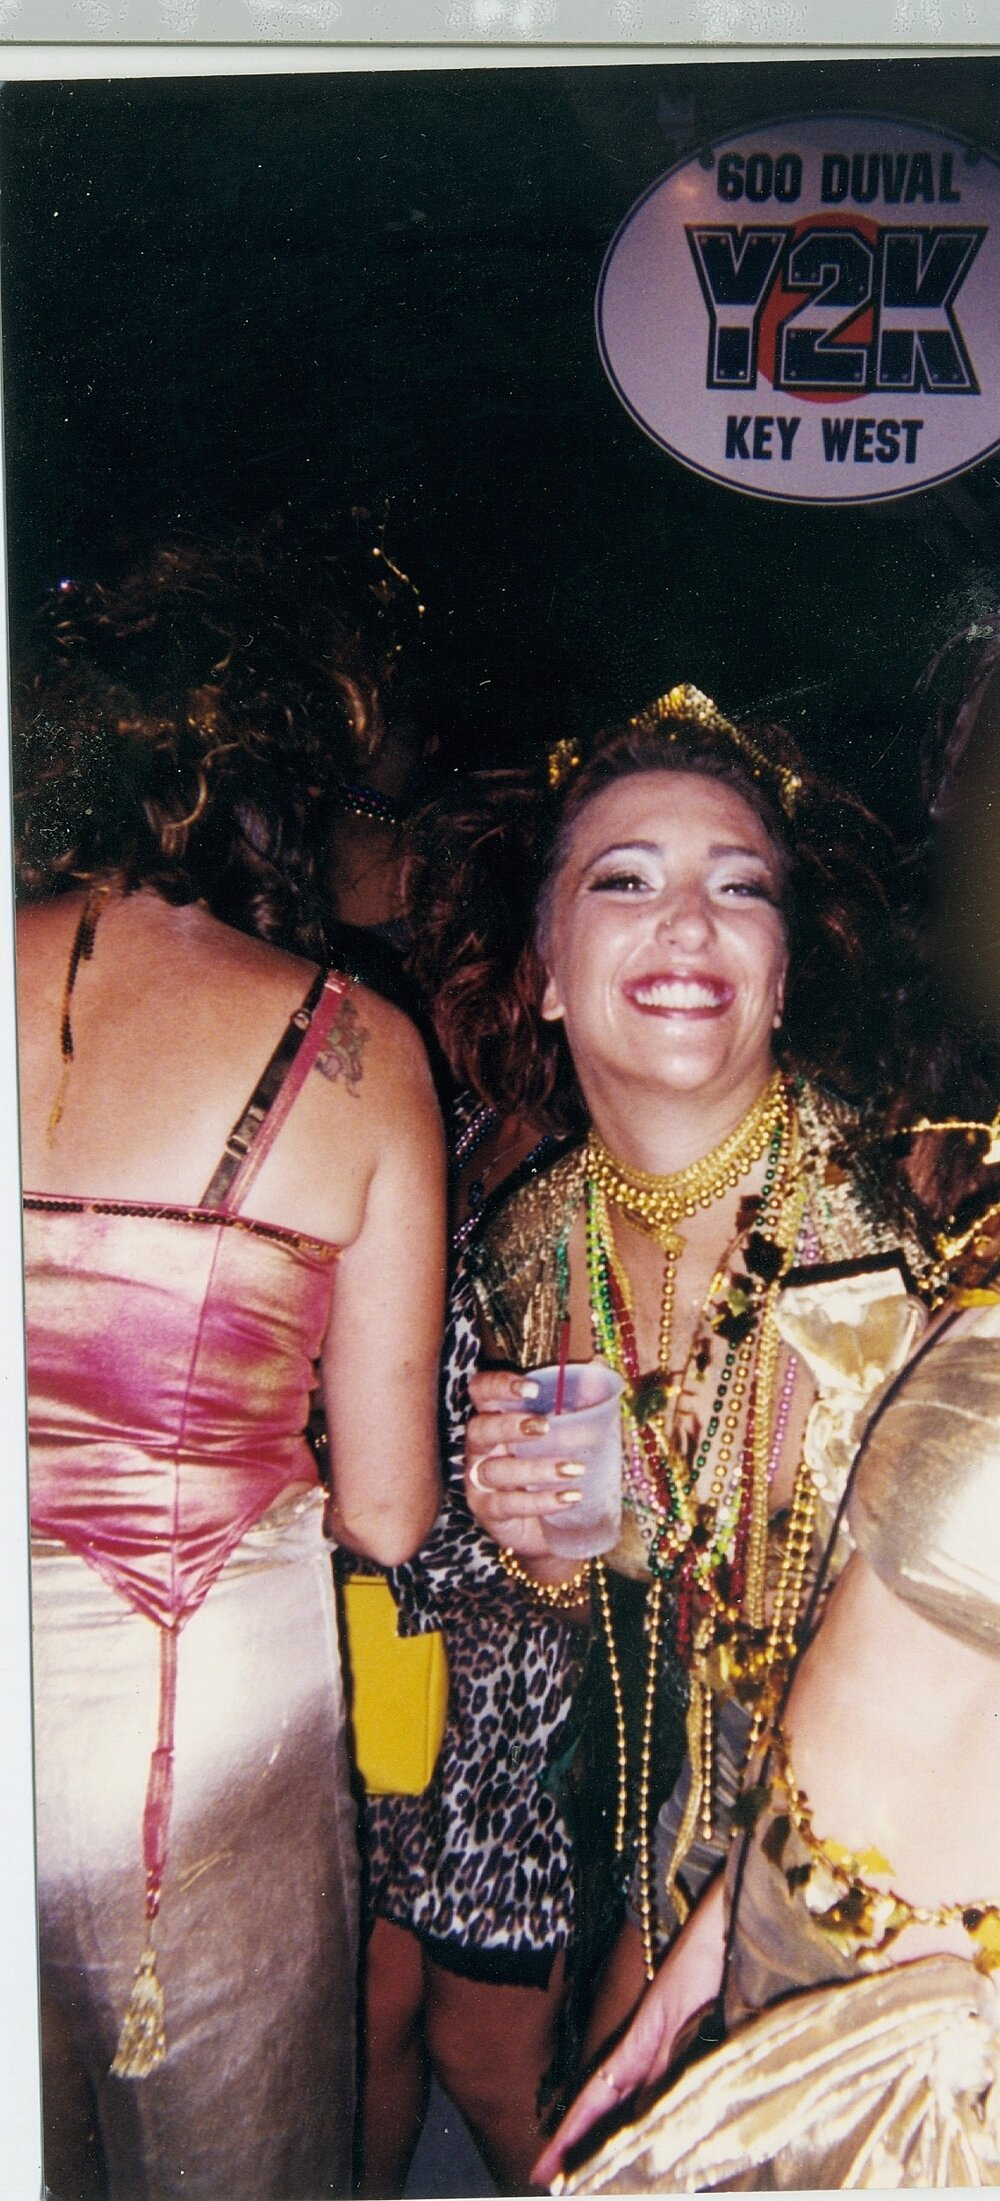 Fantasy fest in key West. I was about 26 and this was towards the end of my drinking.